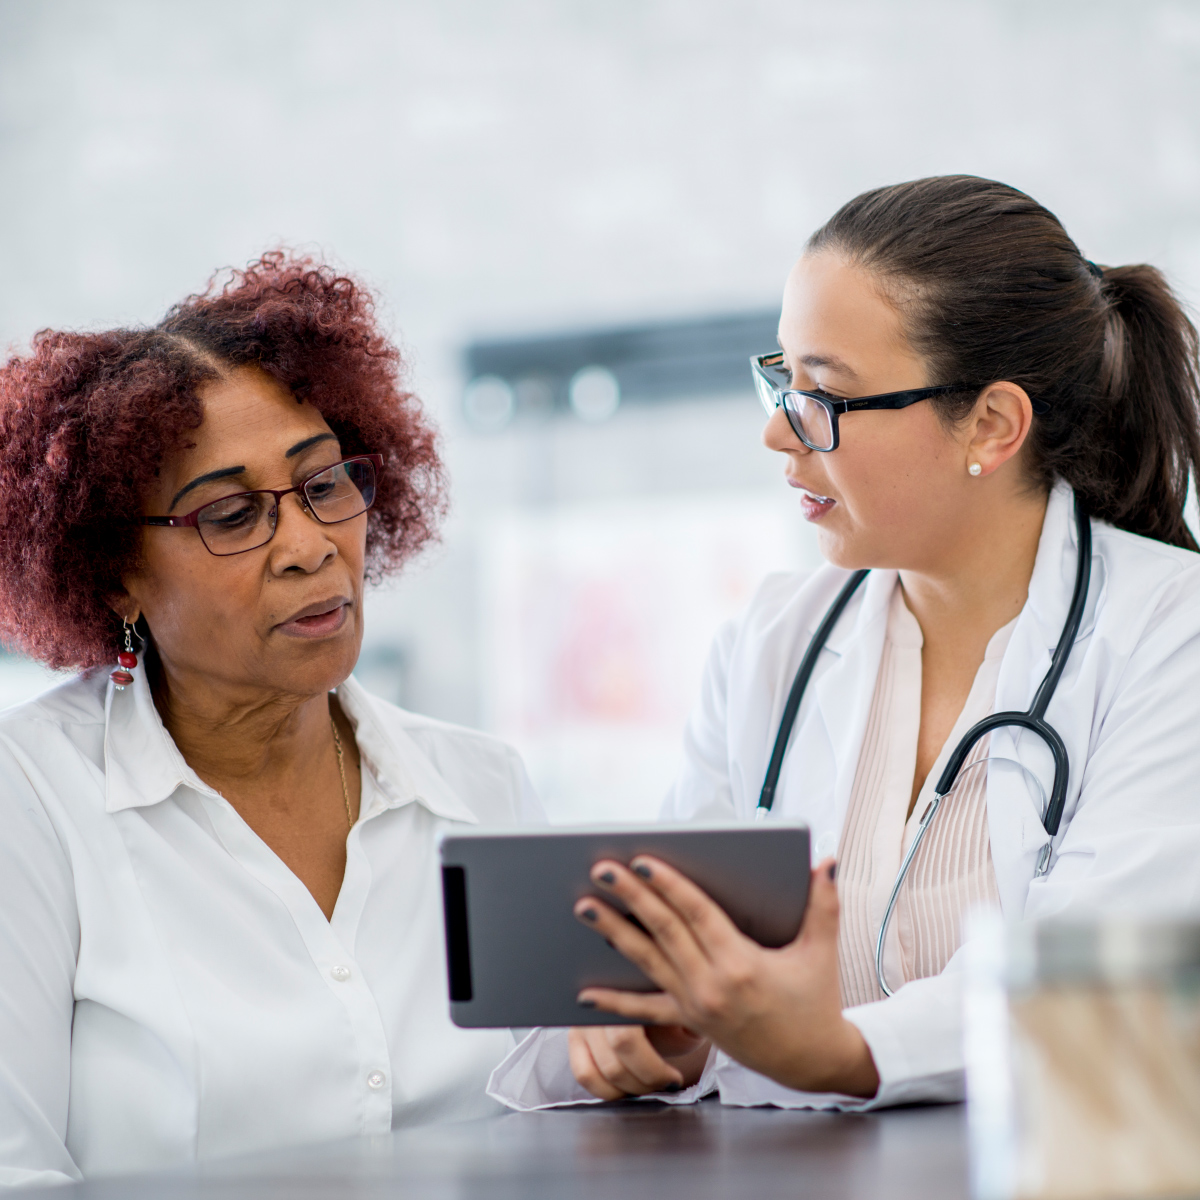 female doctors discussing notes on a tablet with female patient